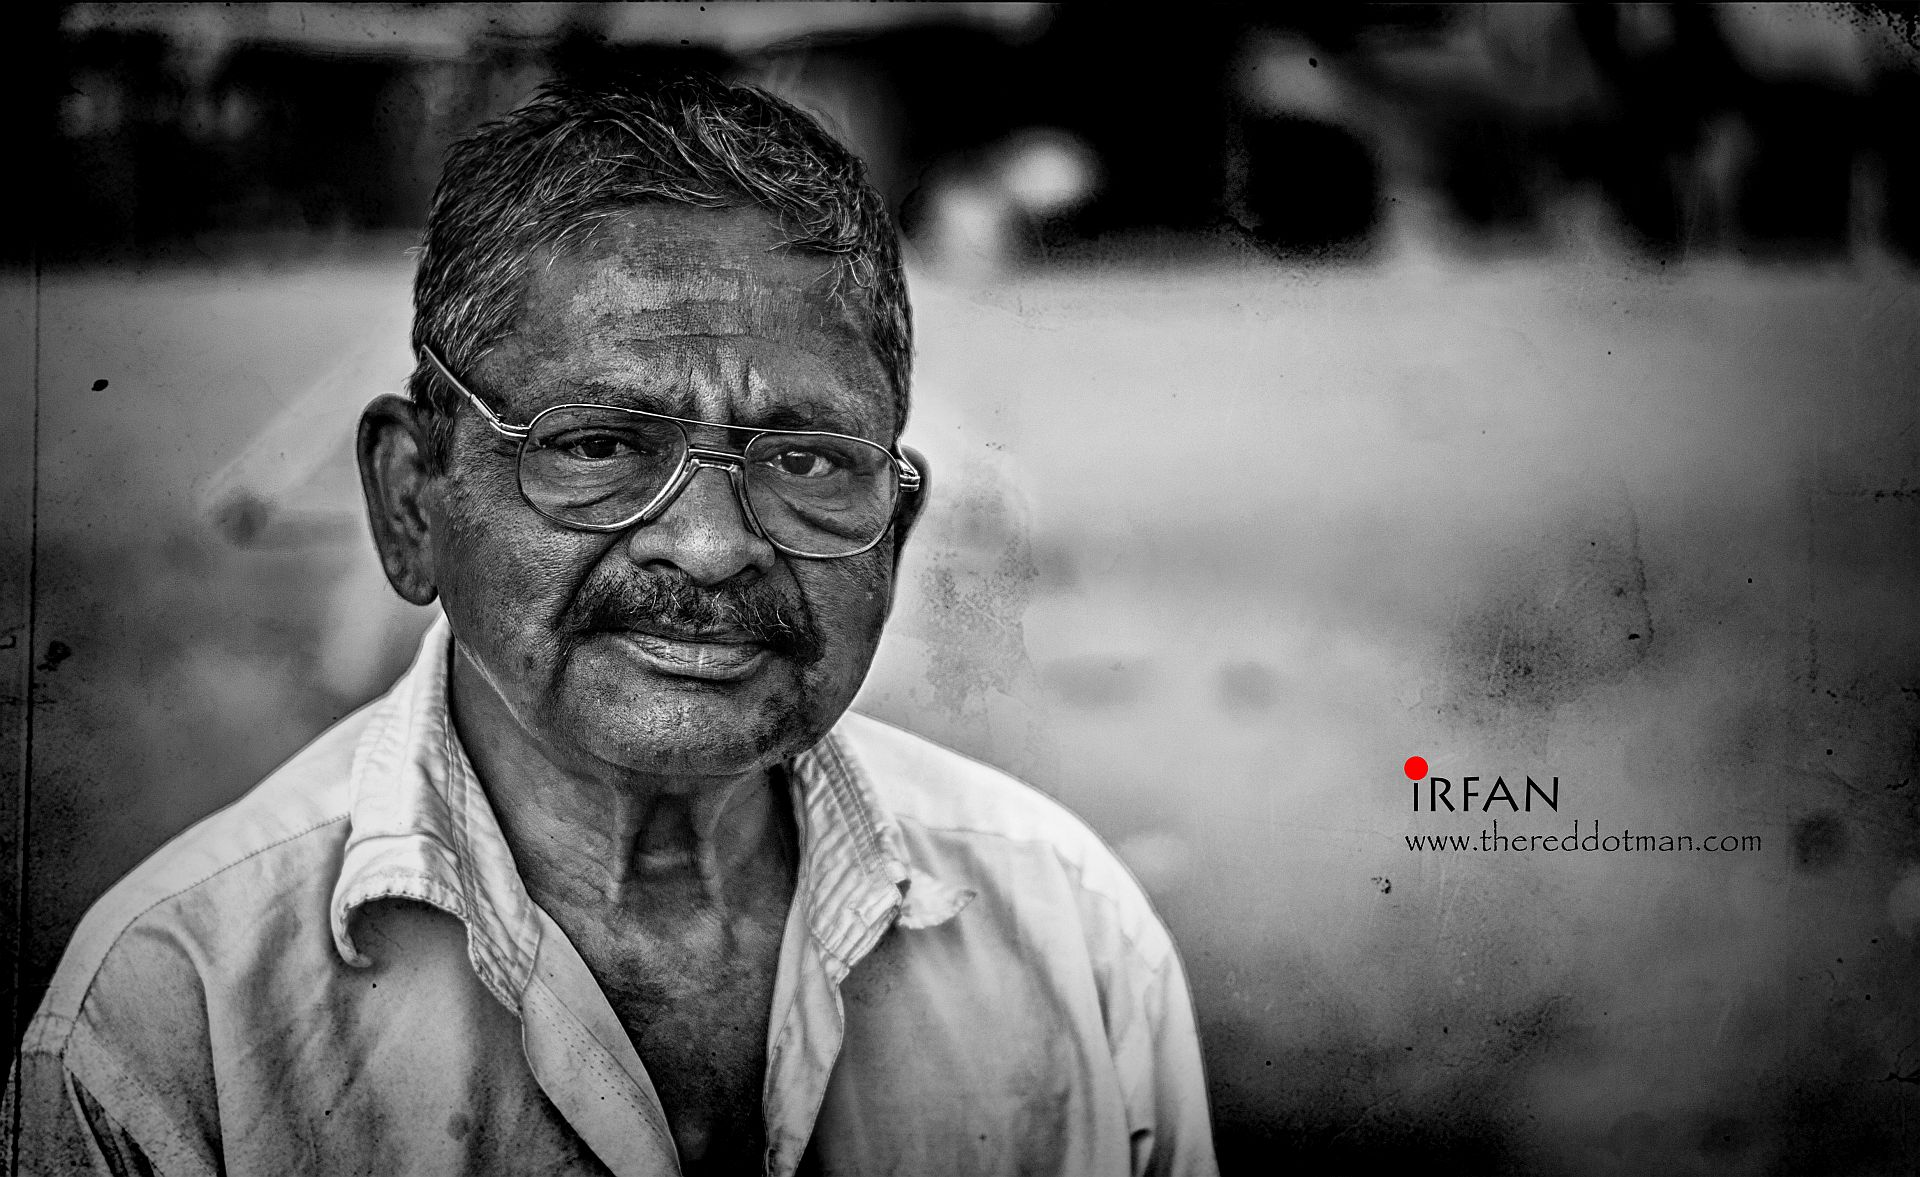 indian fortune tellers, besant nagar beach, irfan hussain, thereddotman, black and white portraits